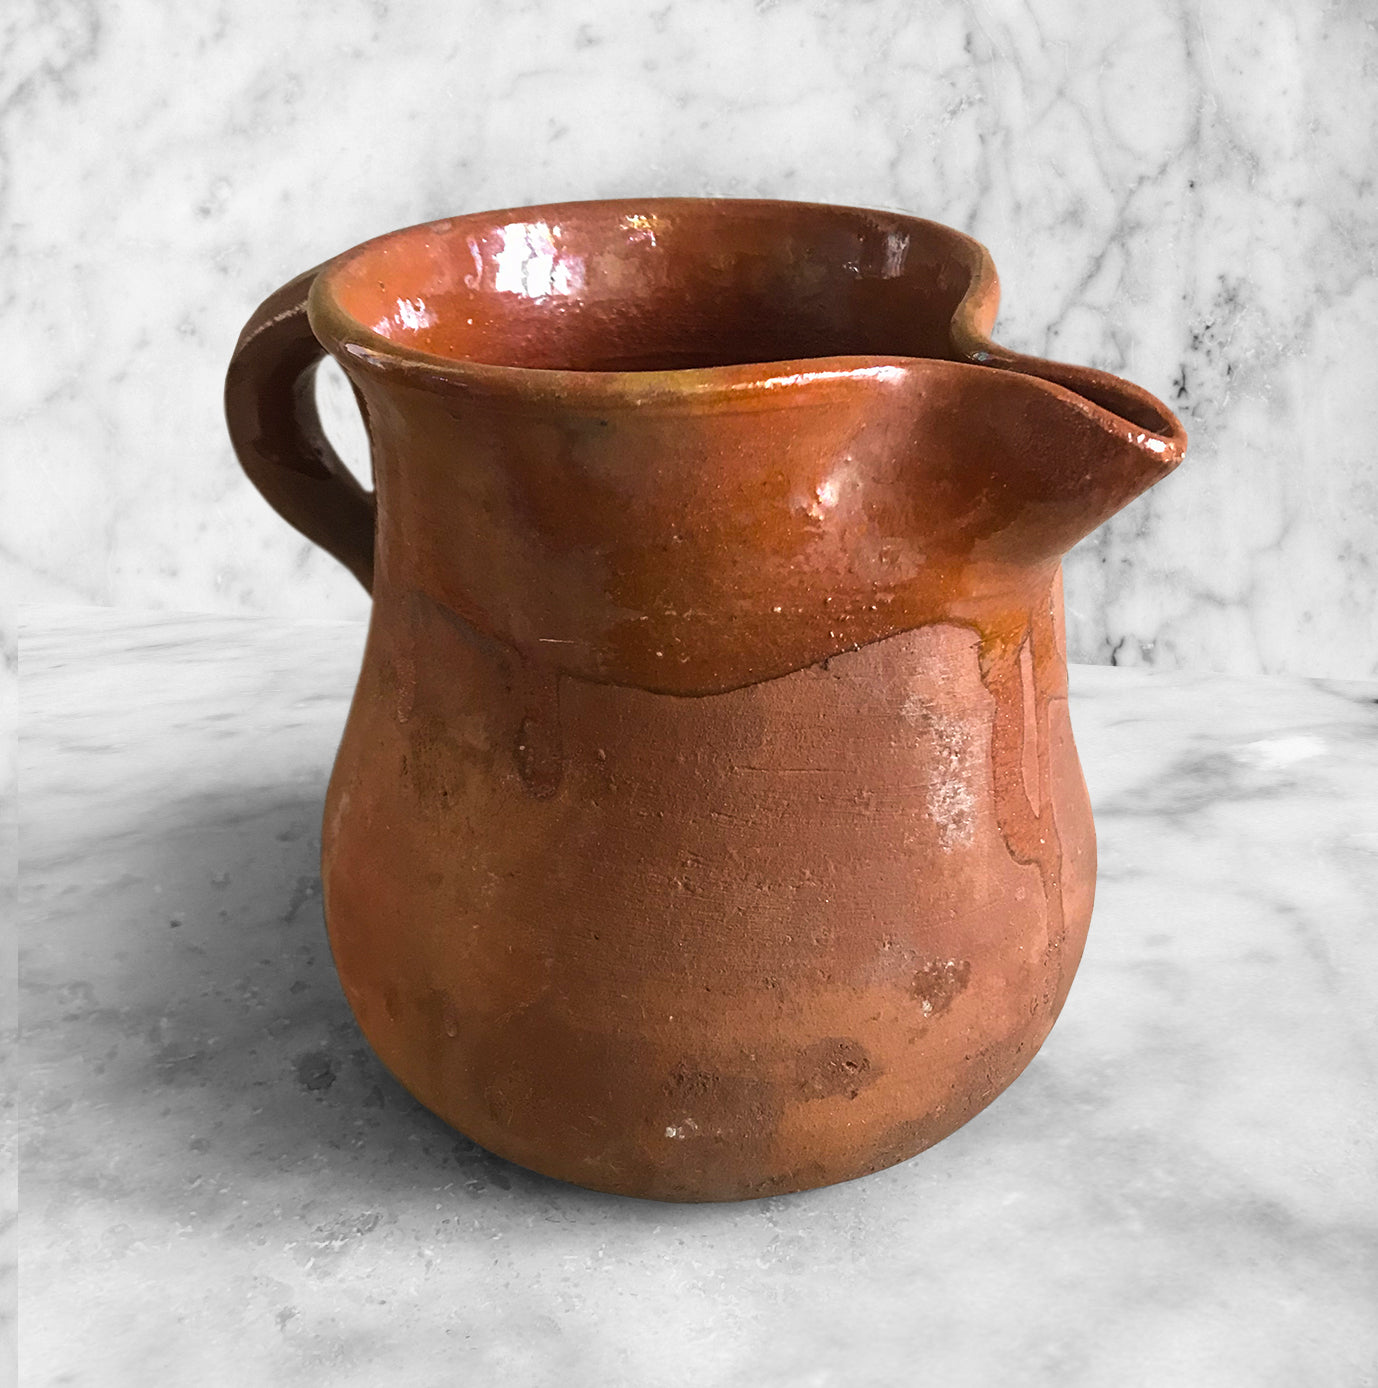 Rustic country table jug. Beautiful, honest form and a fantastic rich, red, earthy coulour - SHOP NOW - www.intovintage.co.uk